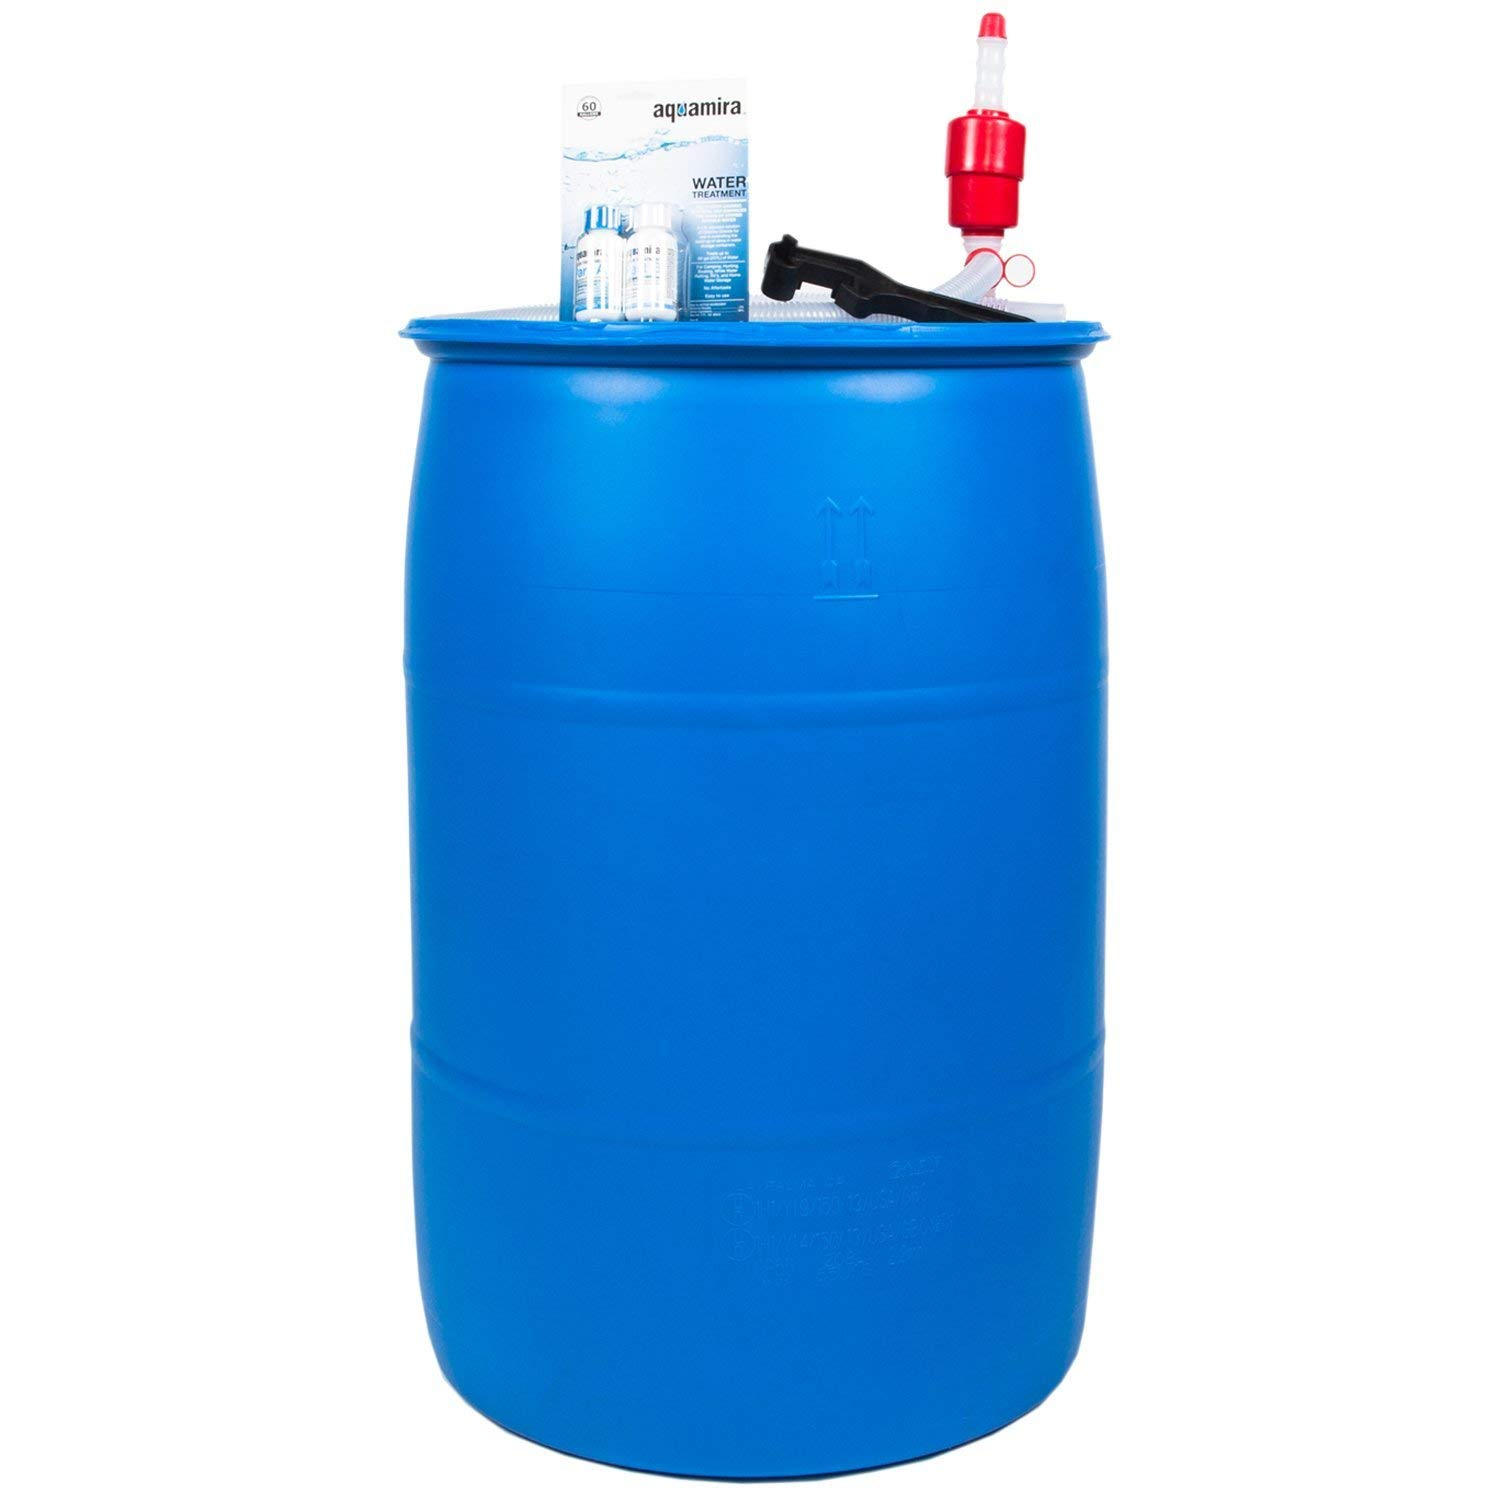 Augason Farms Emergency Water Storage Supply Kit (Pack of 2)